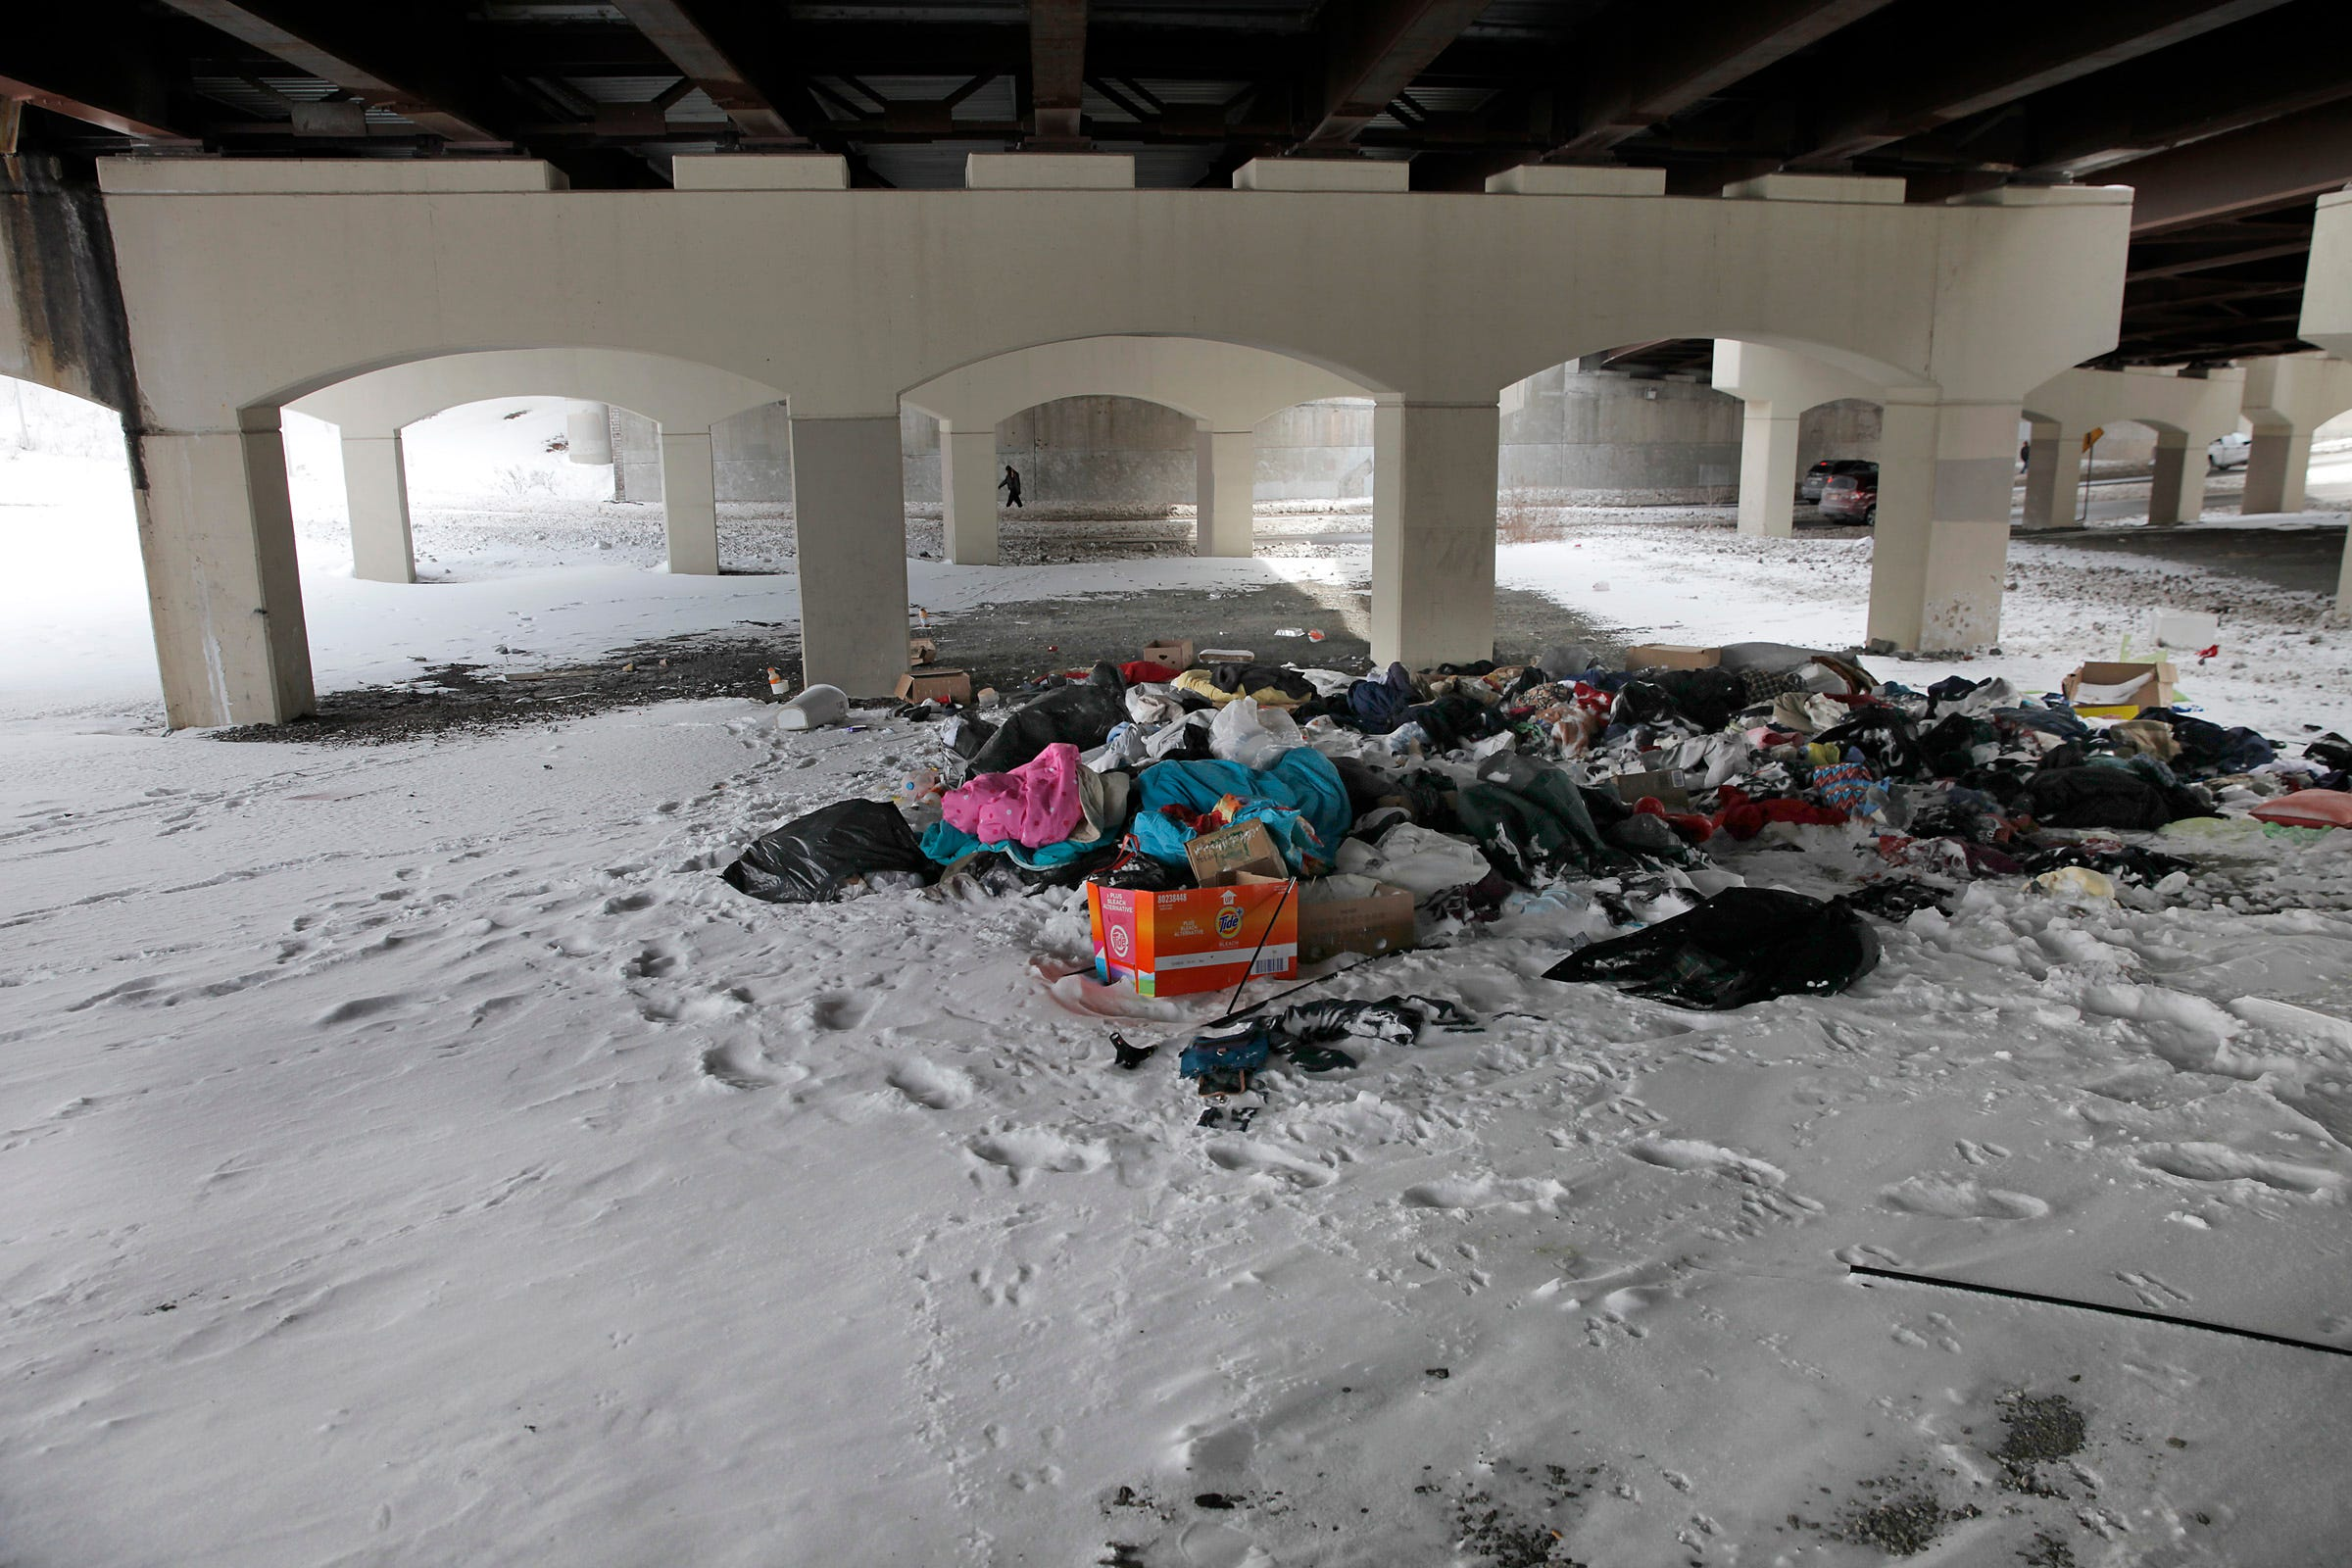 AL 022415 sanctuary garbage A.jpg & Andreatta: Tent city trash tries patience for homeless